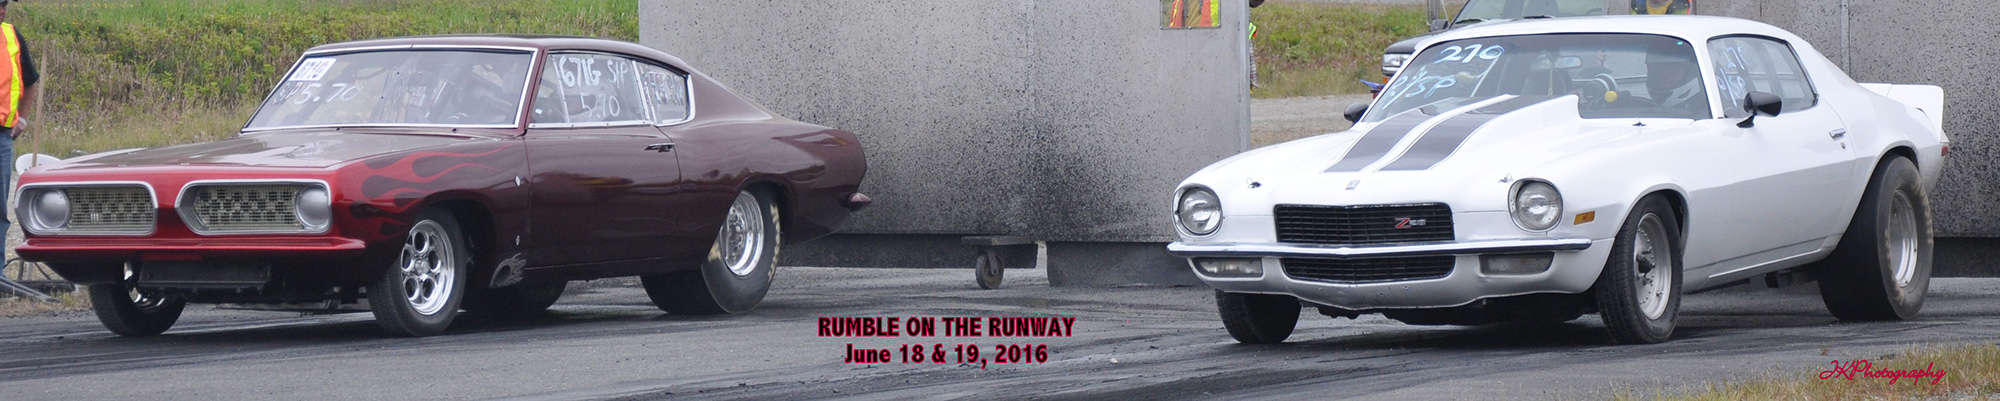 Rumble on the Runway June 18 & 19, 2016 114